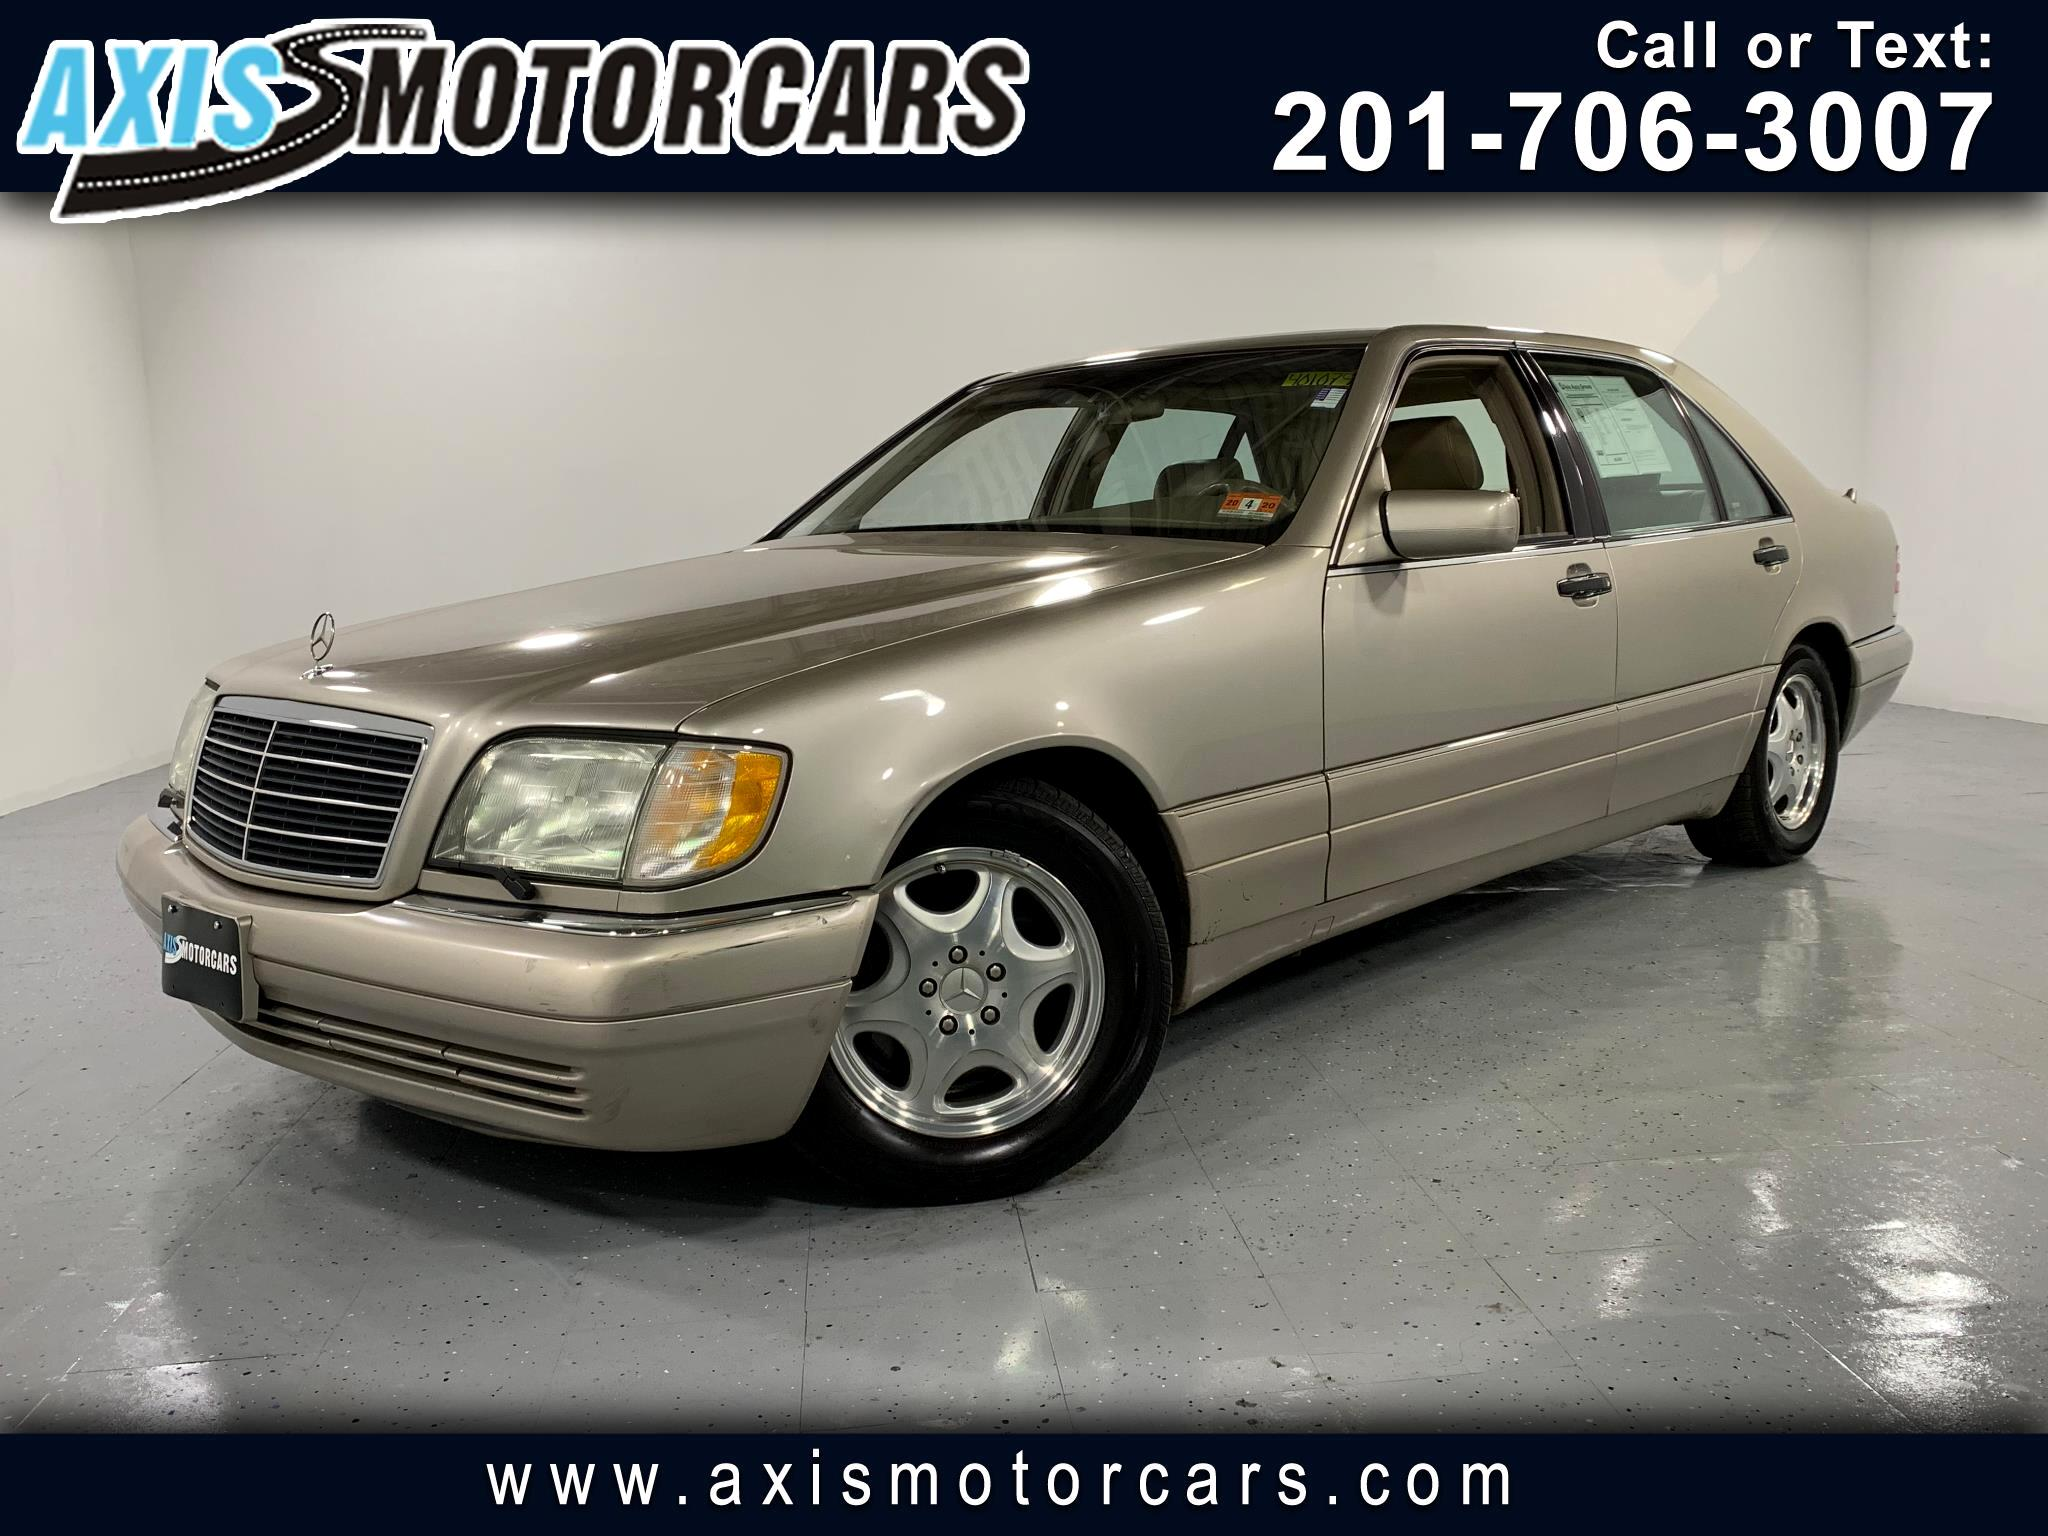 1998 Mercedes-Benz S-Class S420 w/Sunroof Leather